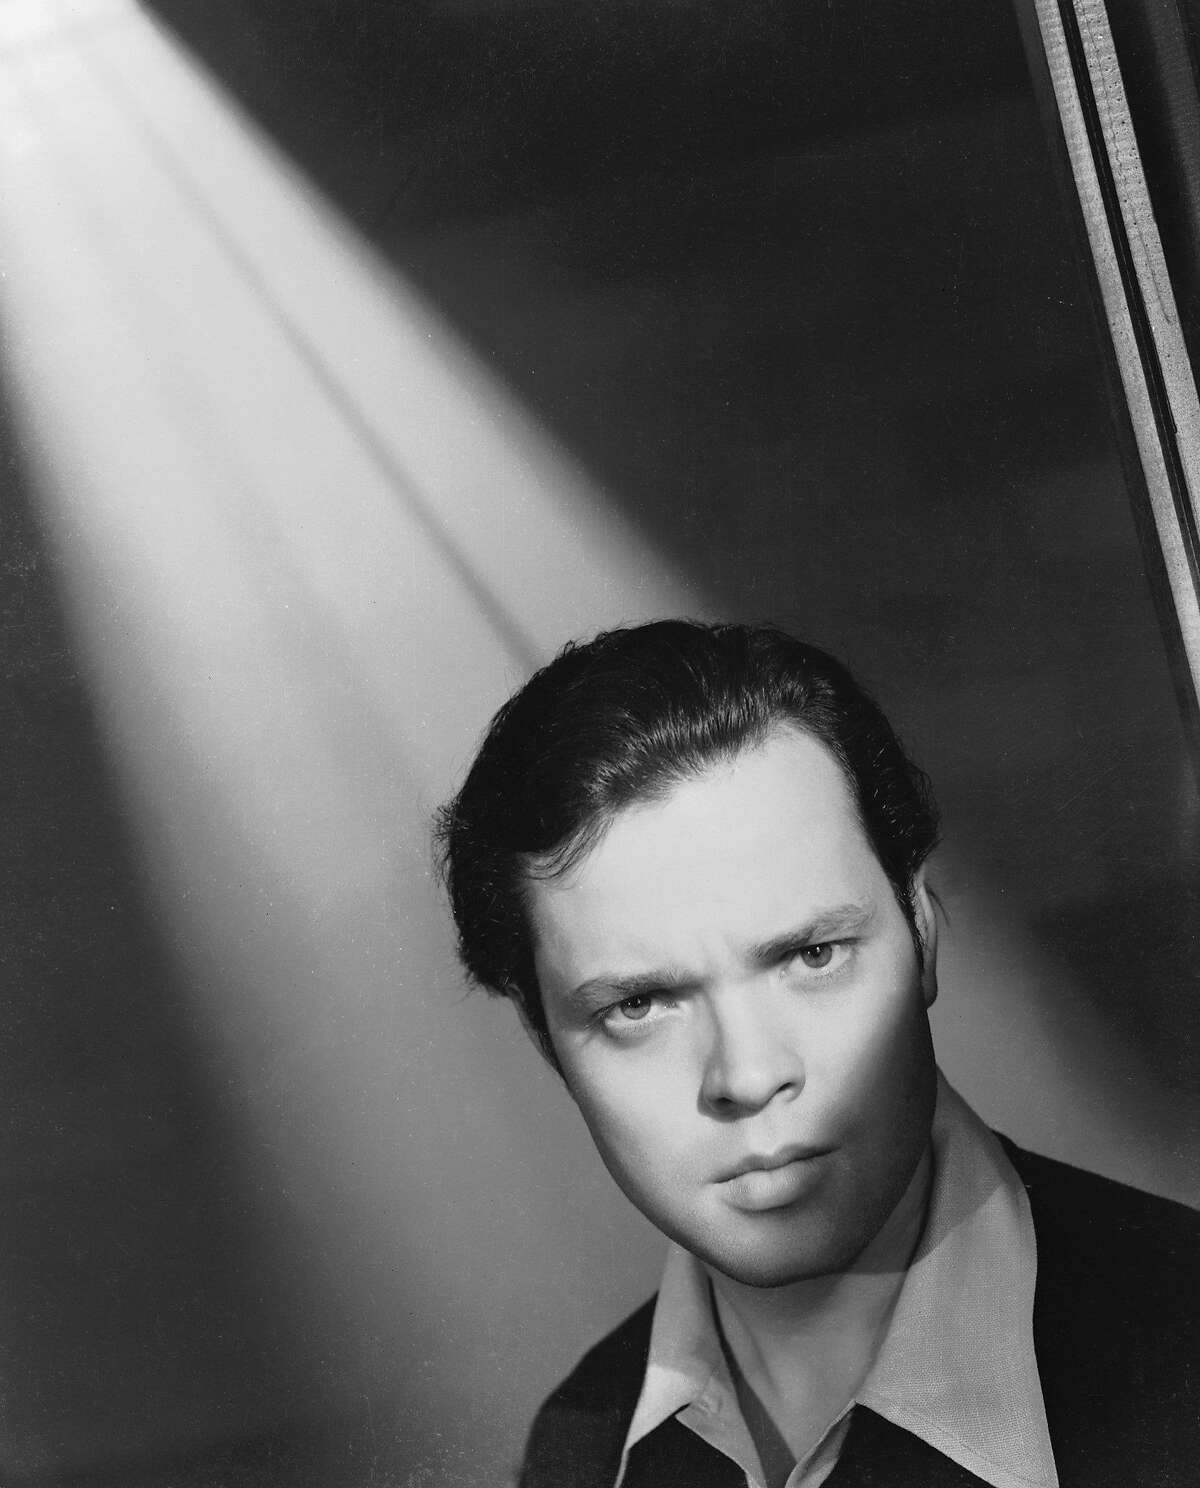 """Orson Welles on the set of """"Citizen Kane."""" 1941: Film star Orson Welles (George Orson Wells) (1915 - 1985) on the set of RKO's 'Citizen Kane', which he directed, wrote and starred in. (Photo by Ernest Bachrach/John Kobal Foundation/Getty Images)"""